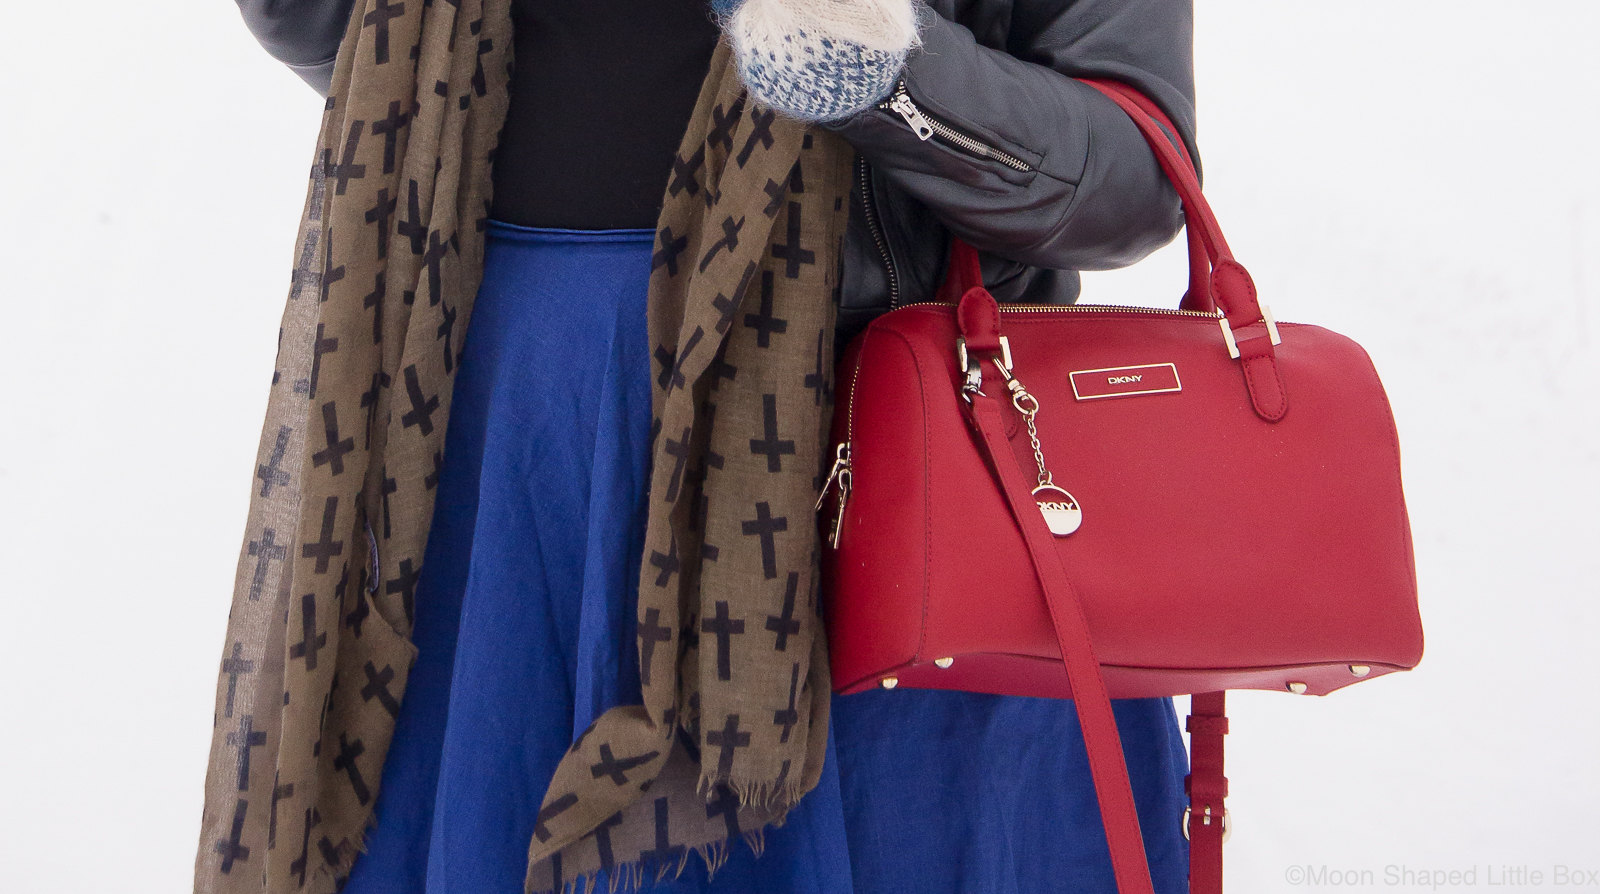 DKNY-bag-winterlook